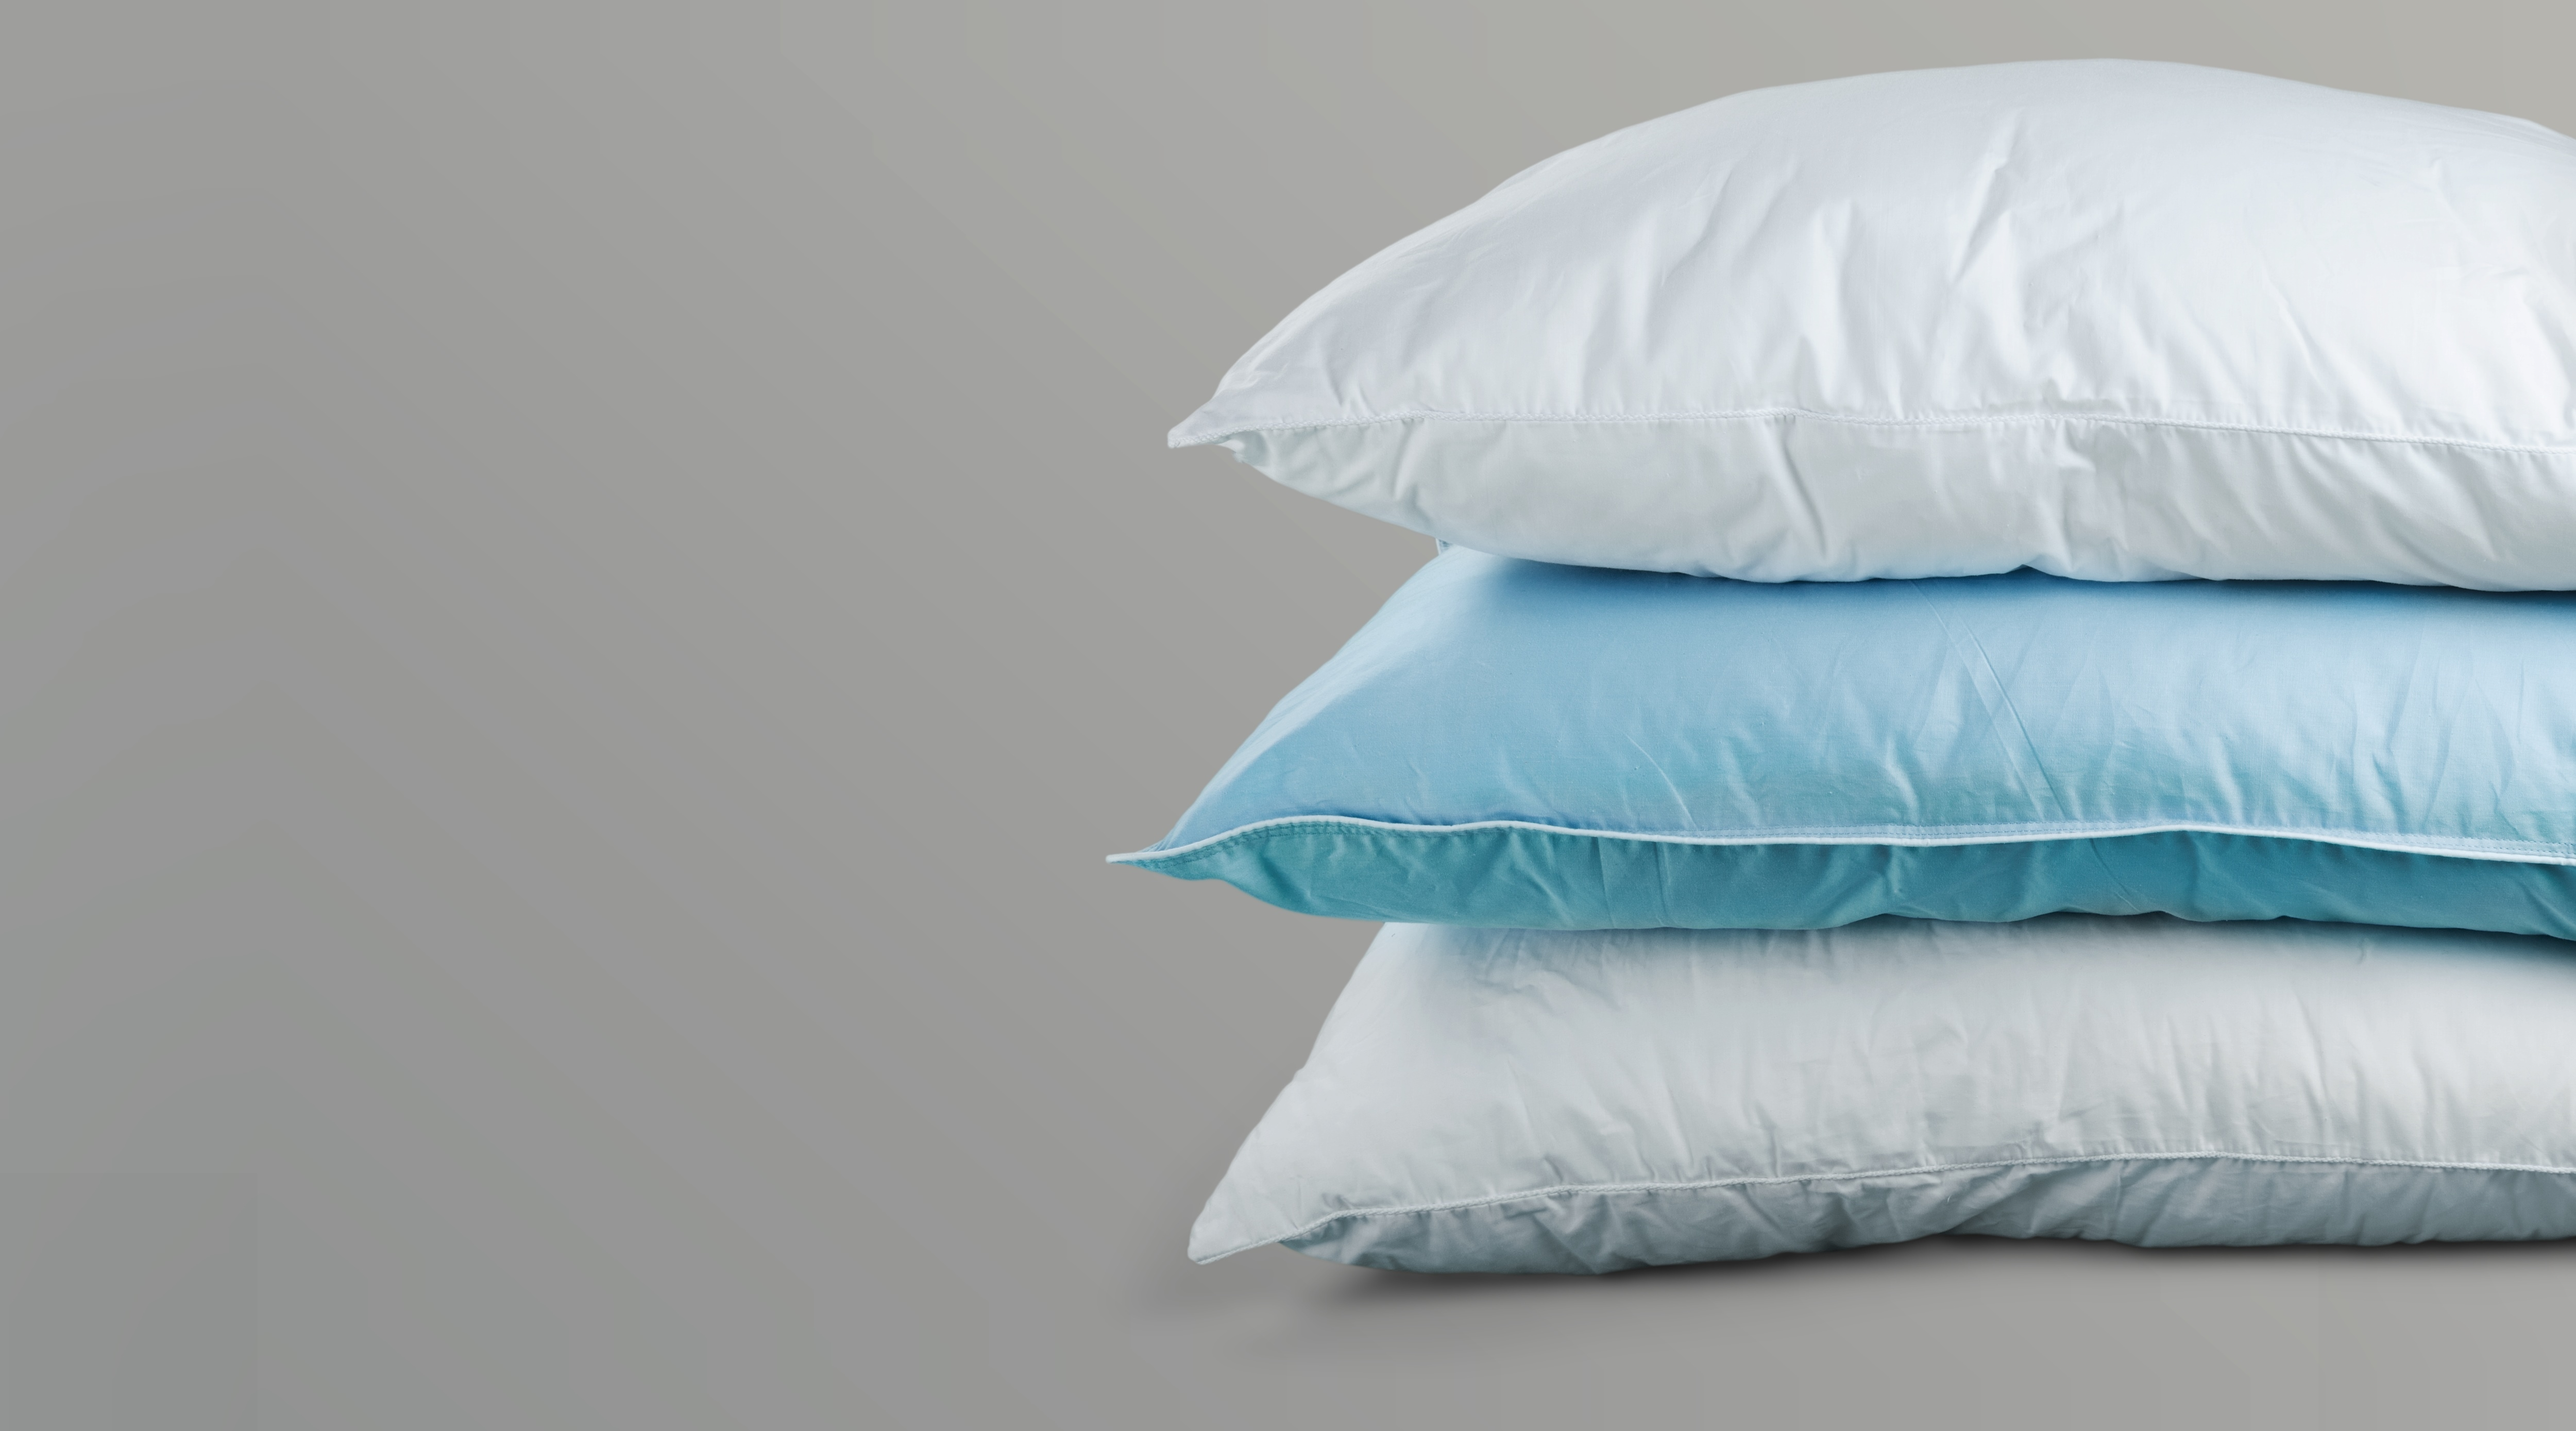 Stack of blue and white pillows